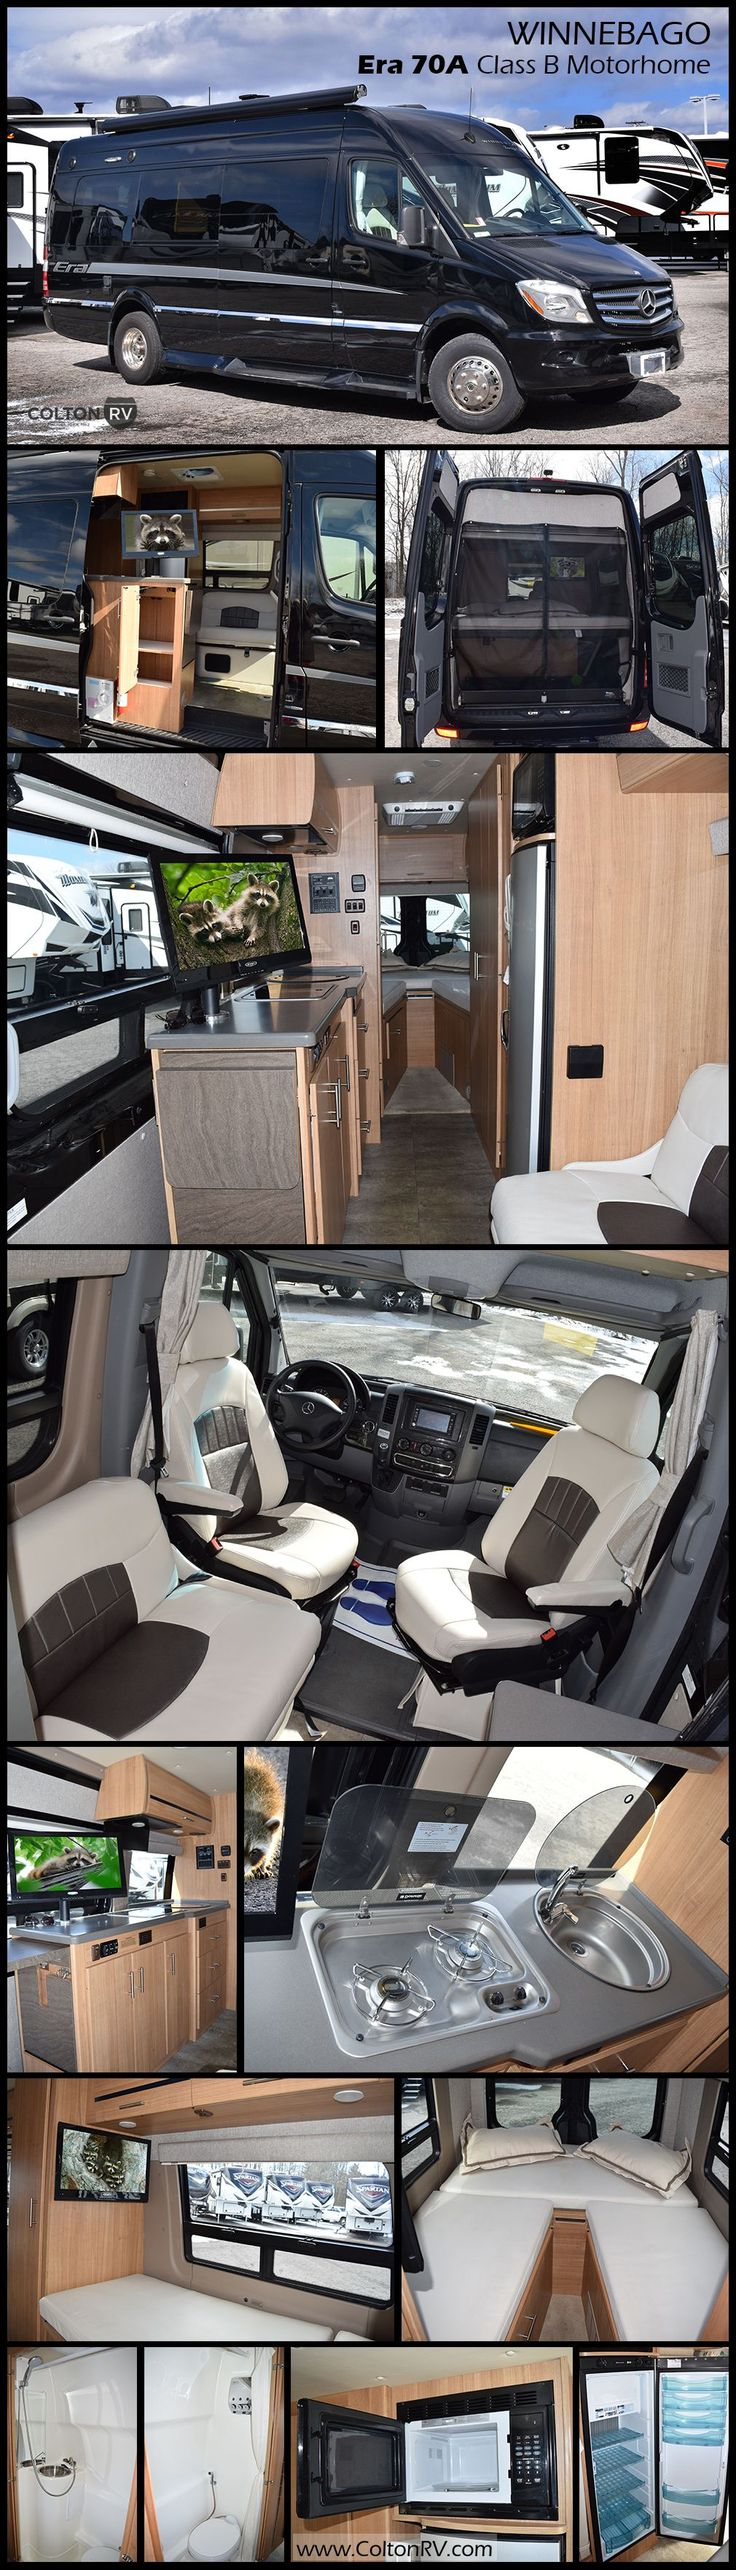 best 20 mercedes rv ideas on pinterest sprinter bus van this popular mercedes benz chassis floor plan delivers a full featured rv experience with incredible fuel efficiency